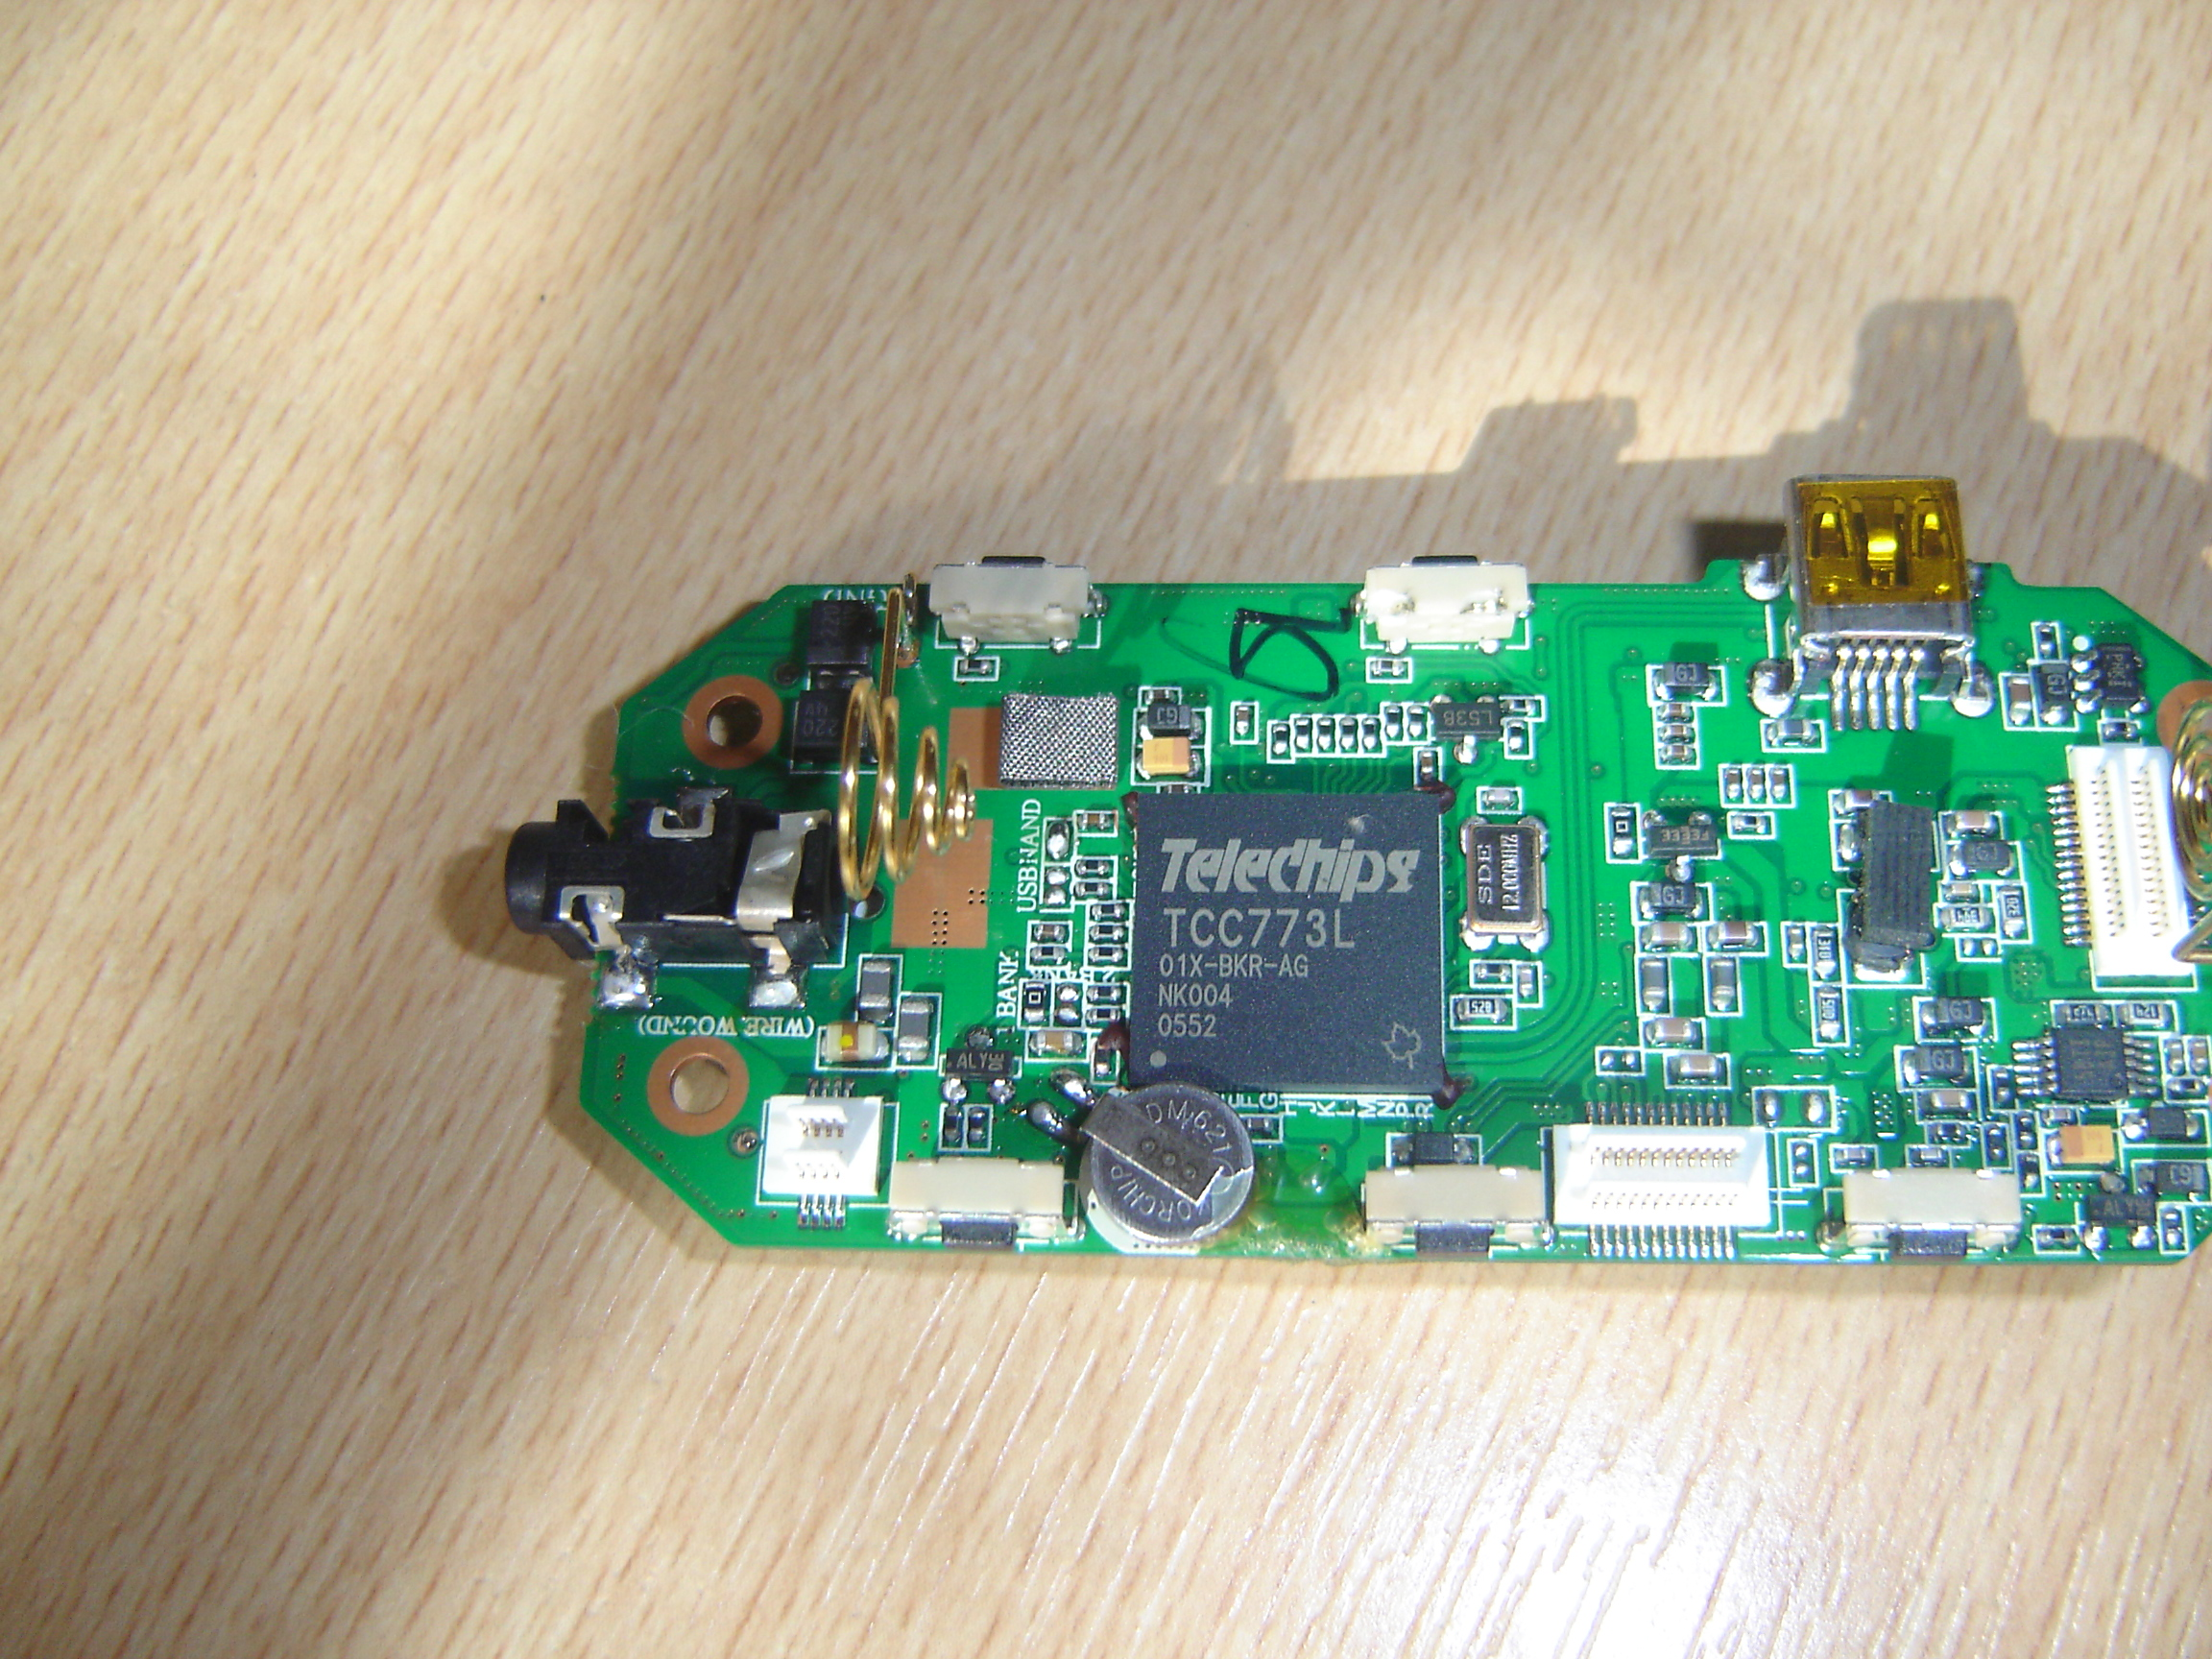 Logikdaxport Main Wiki Player Circuit Board Pcb With Fm Radio View Mp3 Some Photos